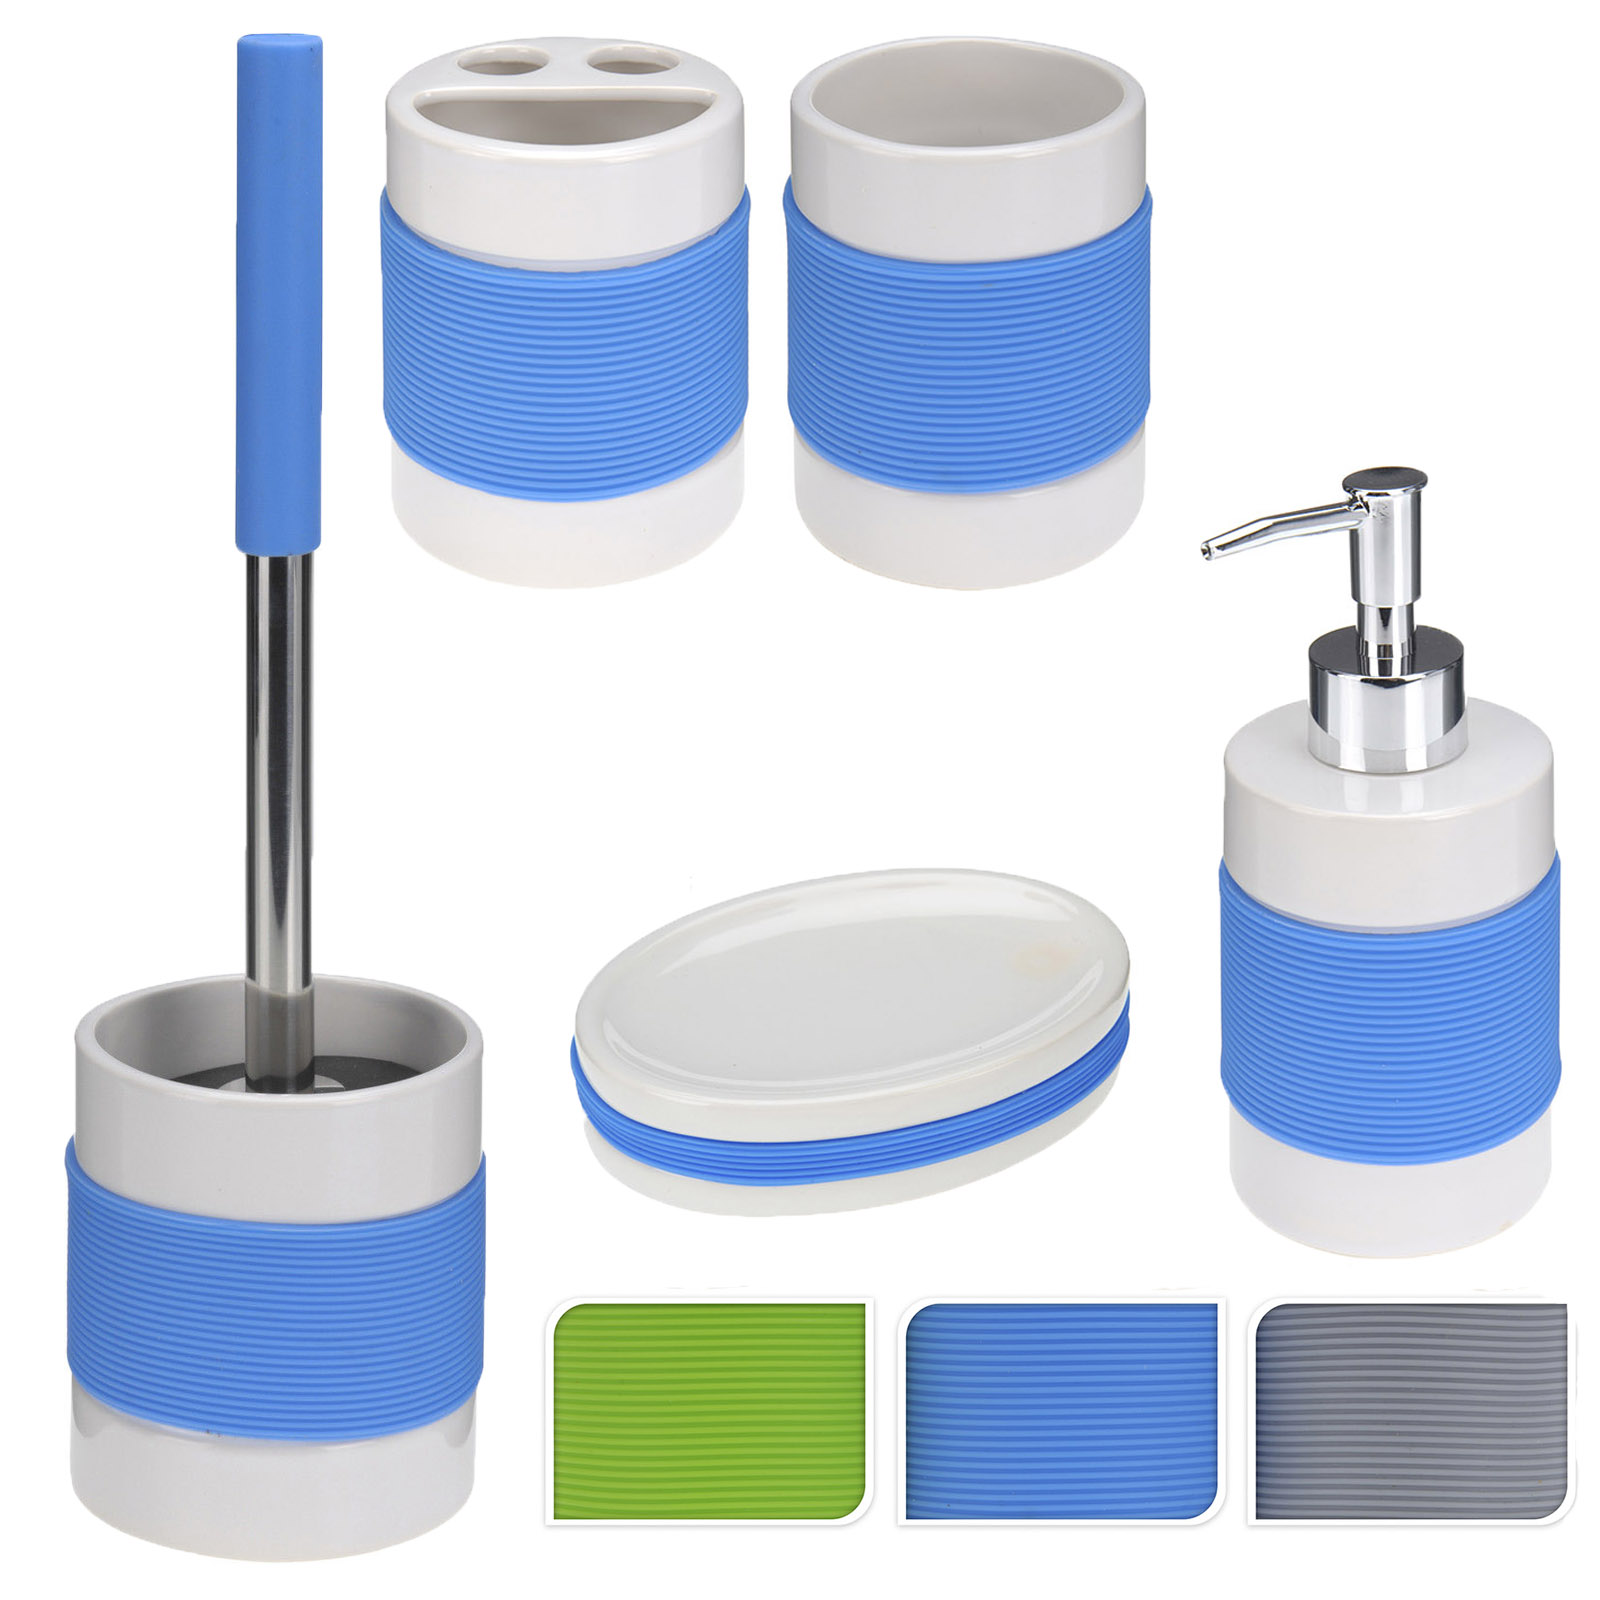 Soap Dispenser Sets Bathroom Accessories Set Silicone Toilet Cleaning Brush